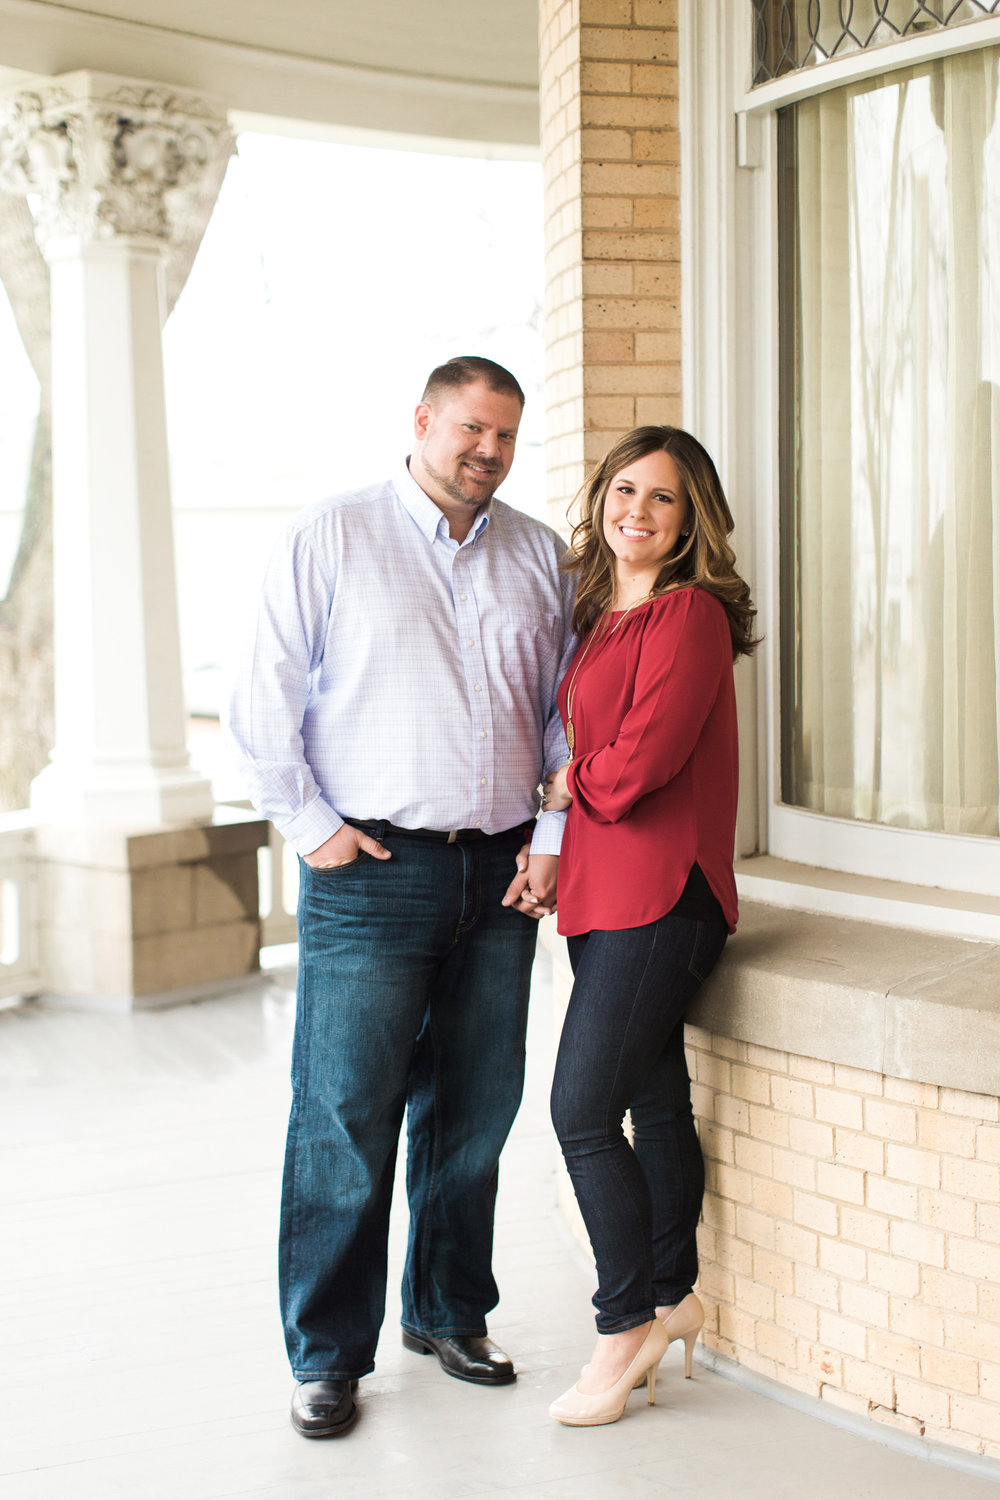 Waco_Engagement_Session-6.JPG